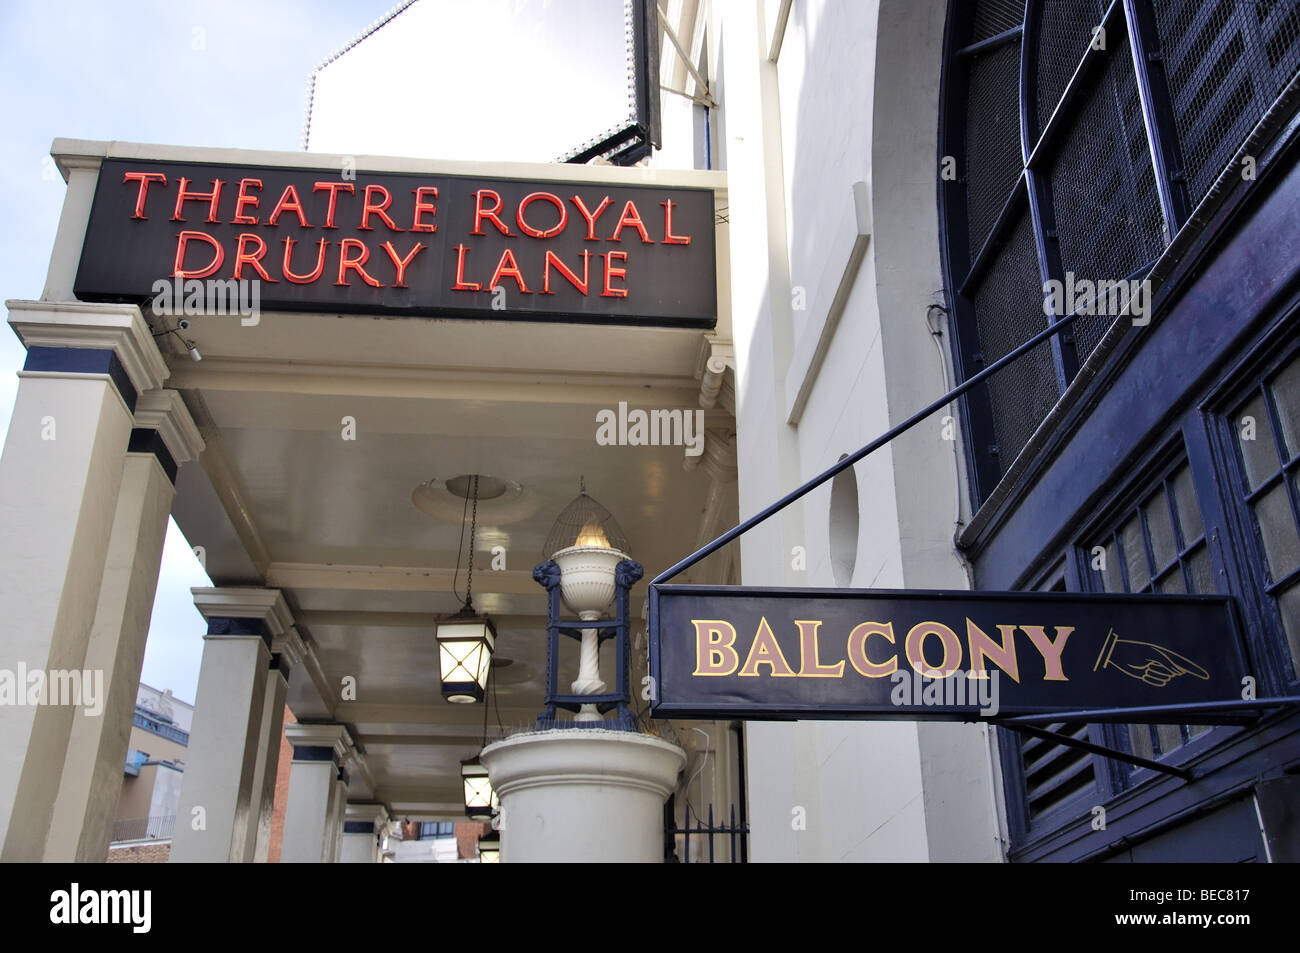 Theatre Royal Drury Lane, Covent Garden, City of Westminster, London, England, United Kingdom Stock Photo